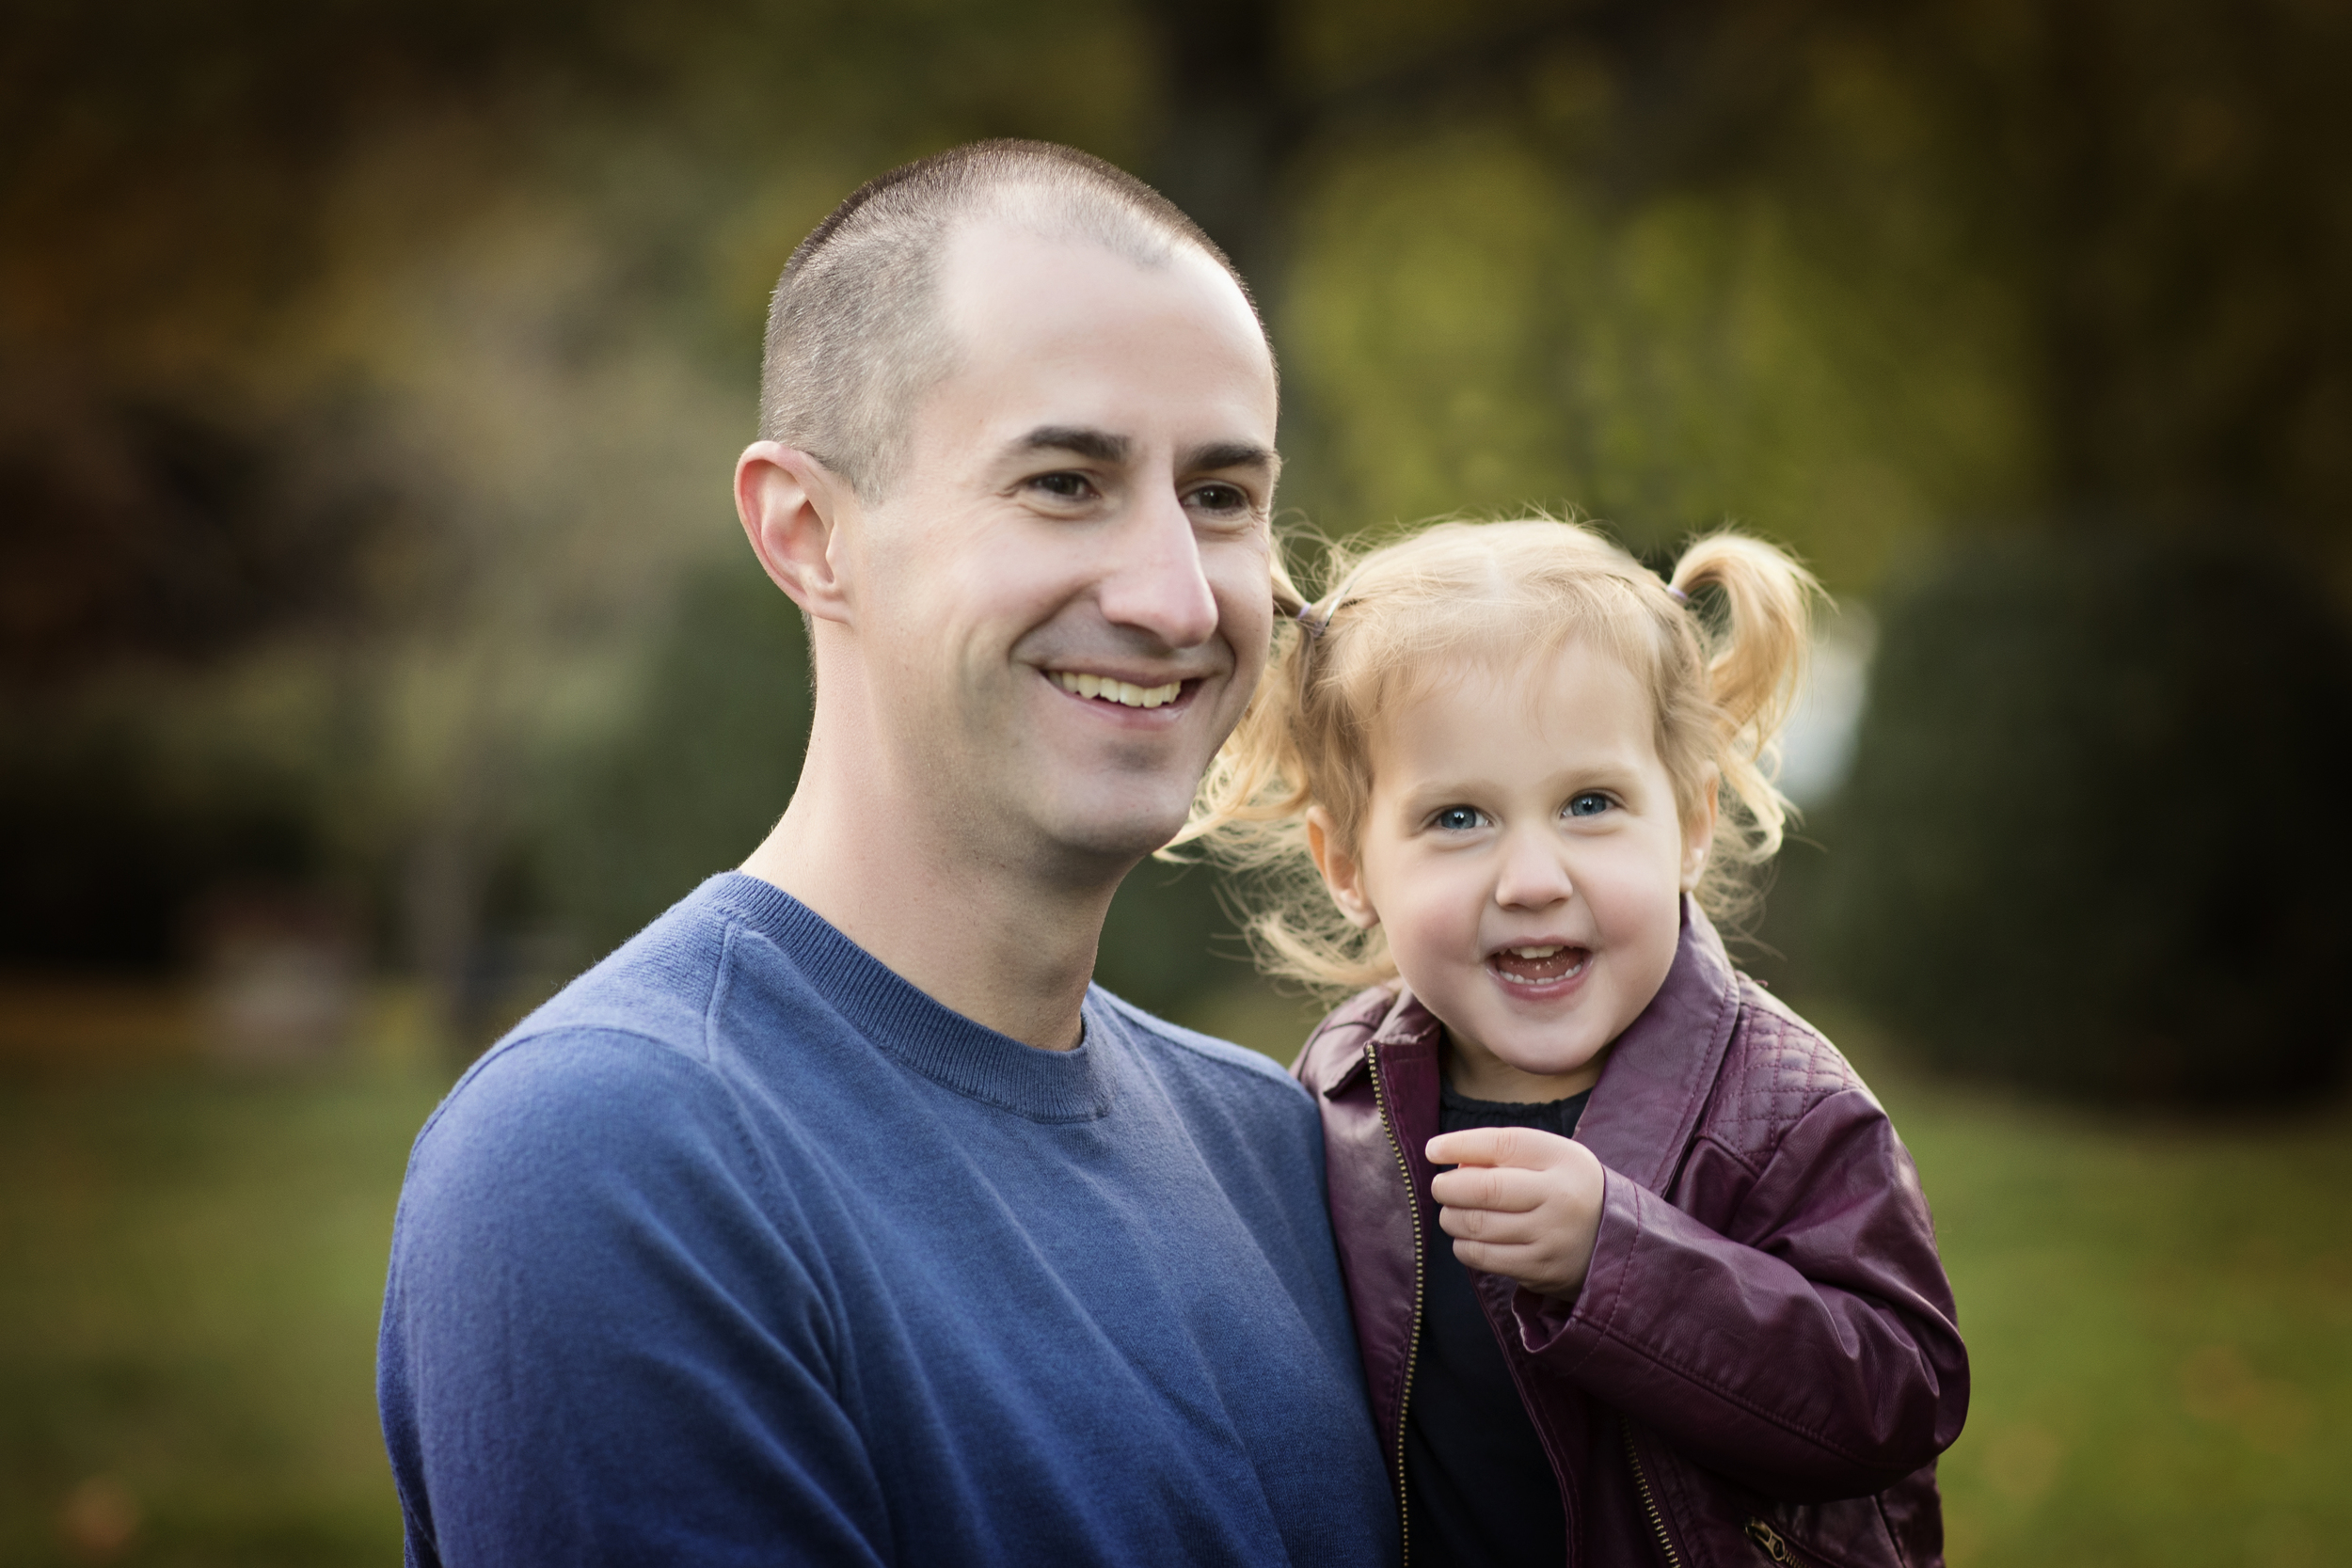 laughing dad and daughter with pigtails Family Photography Bristow VA Kate Montaner Photography